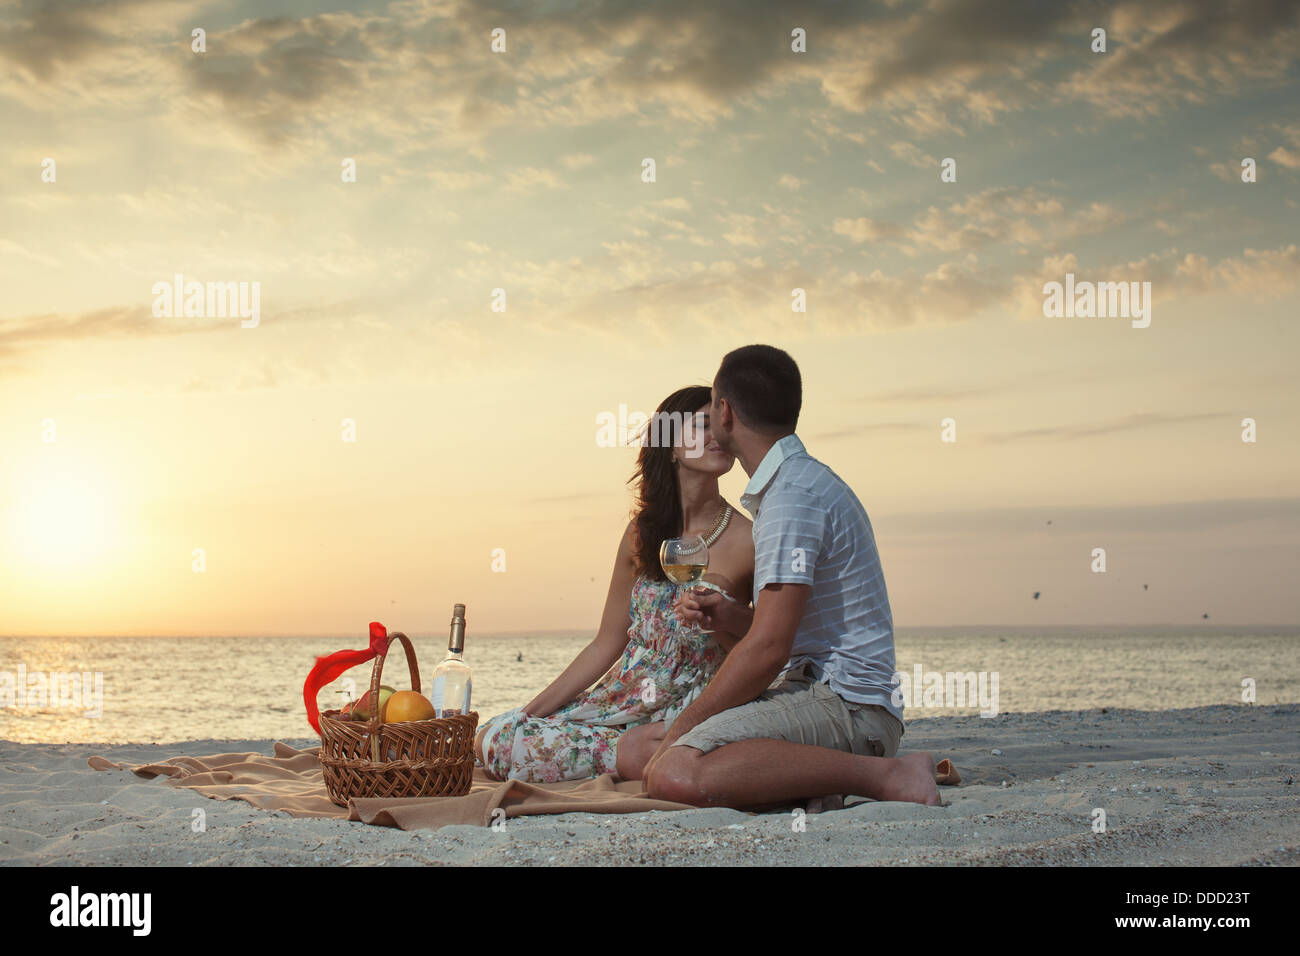 Couple On Beach With Luxury Wine Picnic during beautiful sunset. Dawn - Stock Image